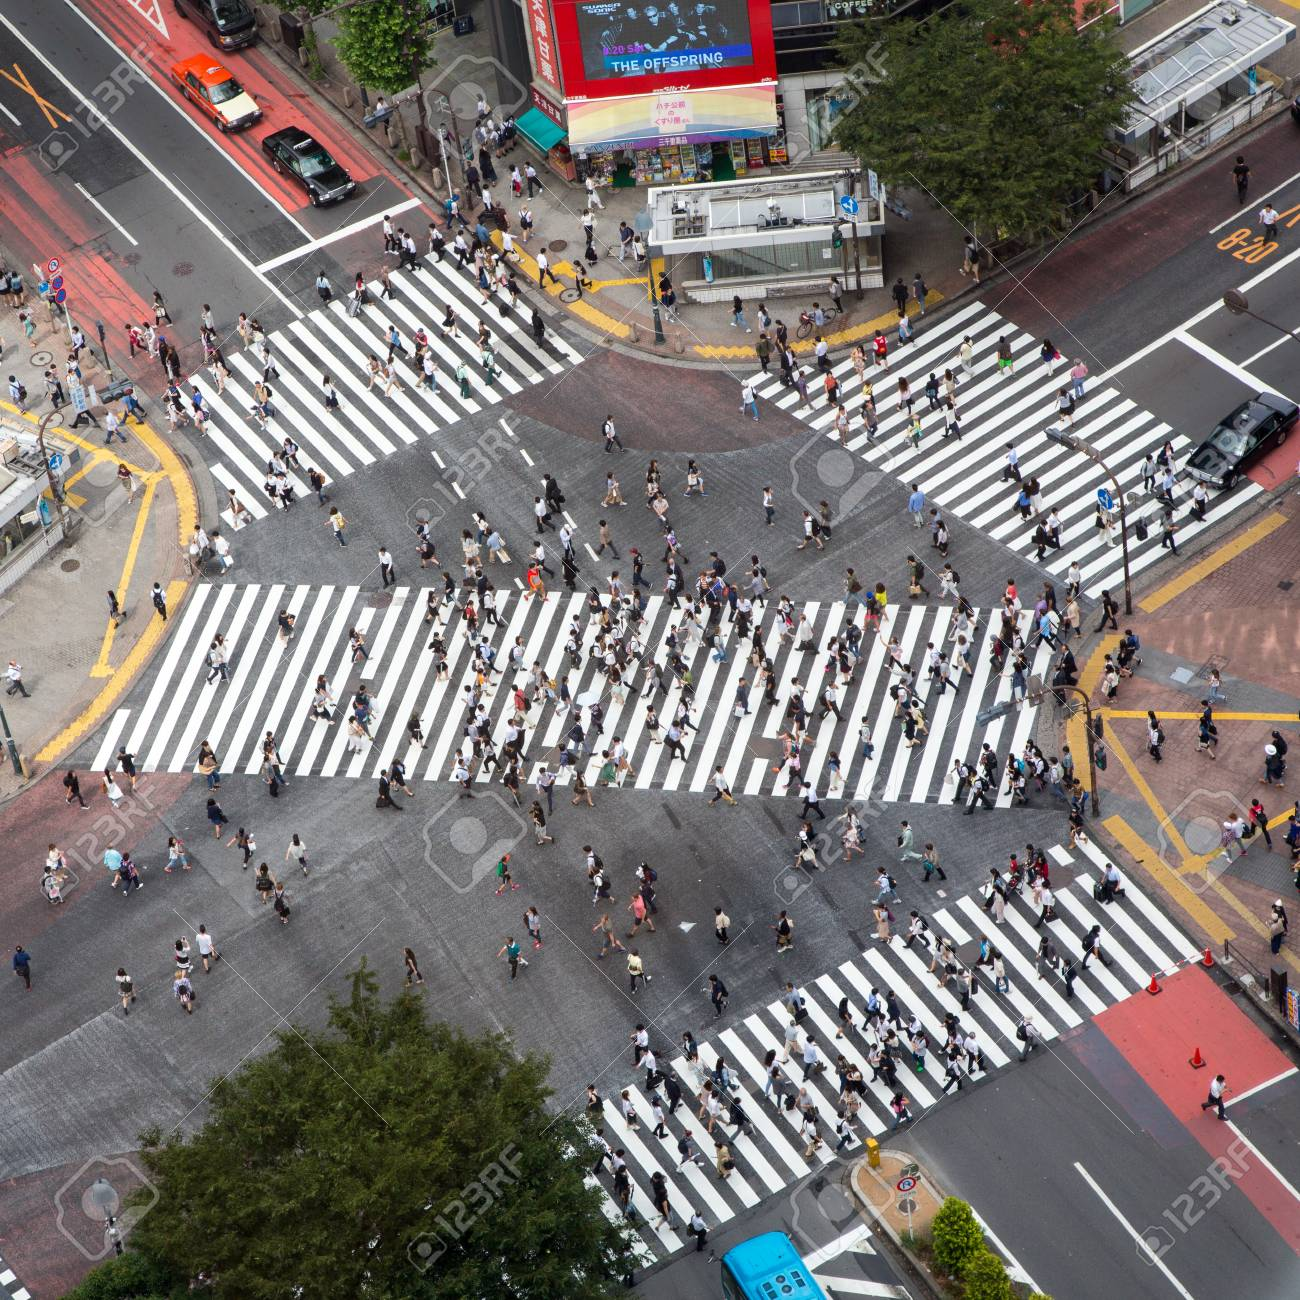 Tokyo, Japan - 26th June 2016: Ariel view of the busy Shibuya